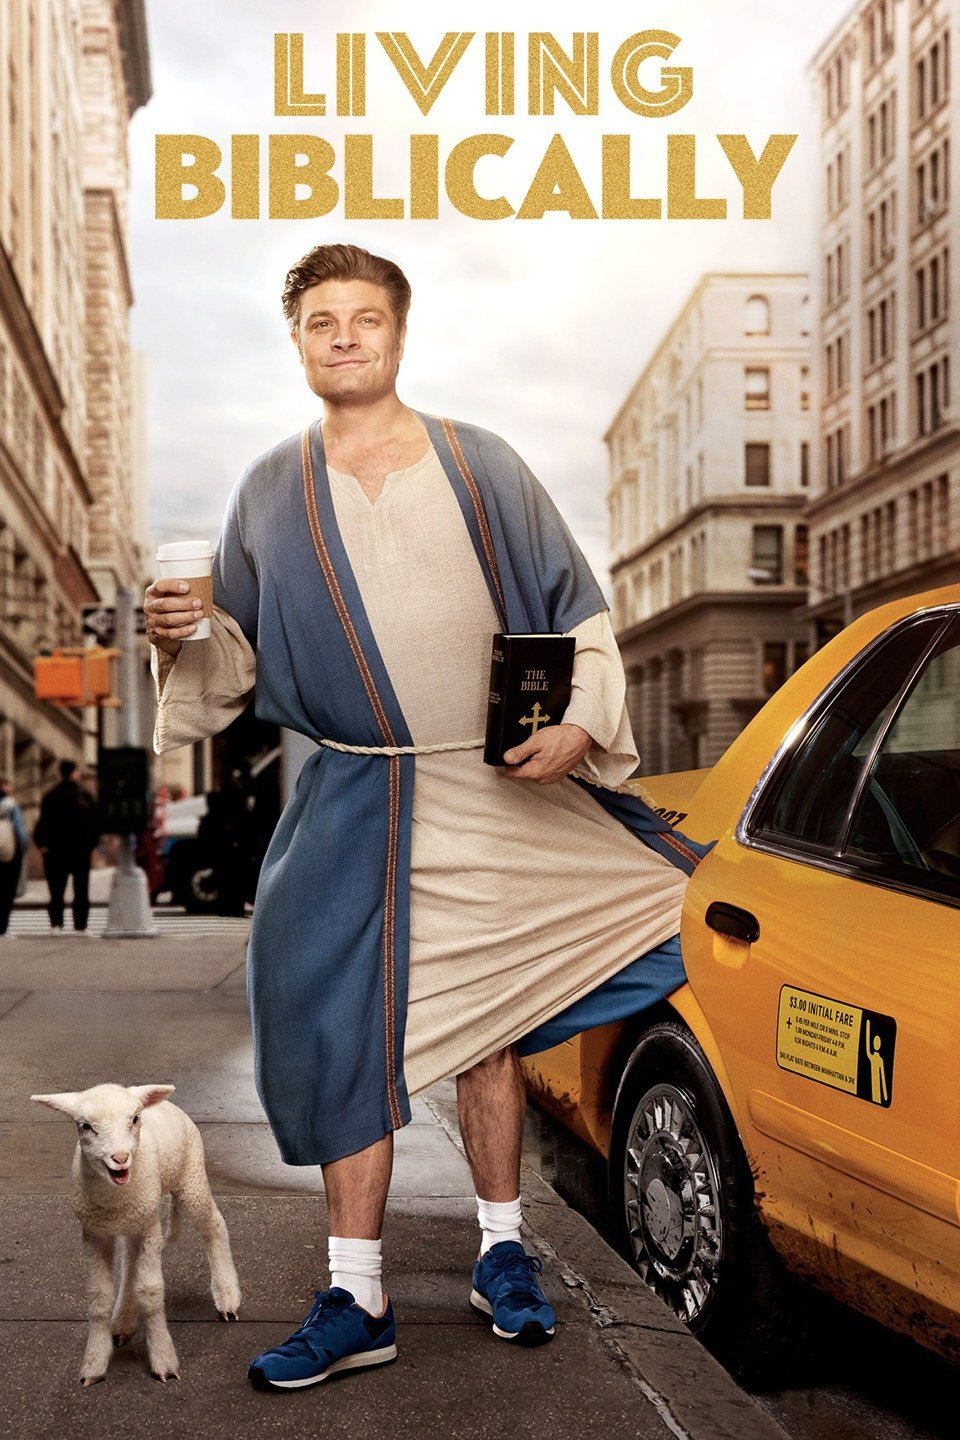 Living Biblically Season 1 Episode 4 Download WebRip 480p & 720p